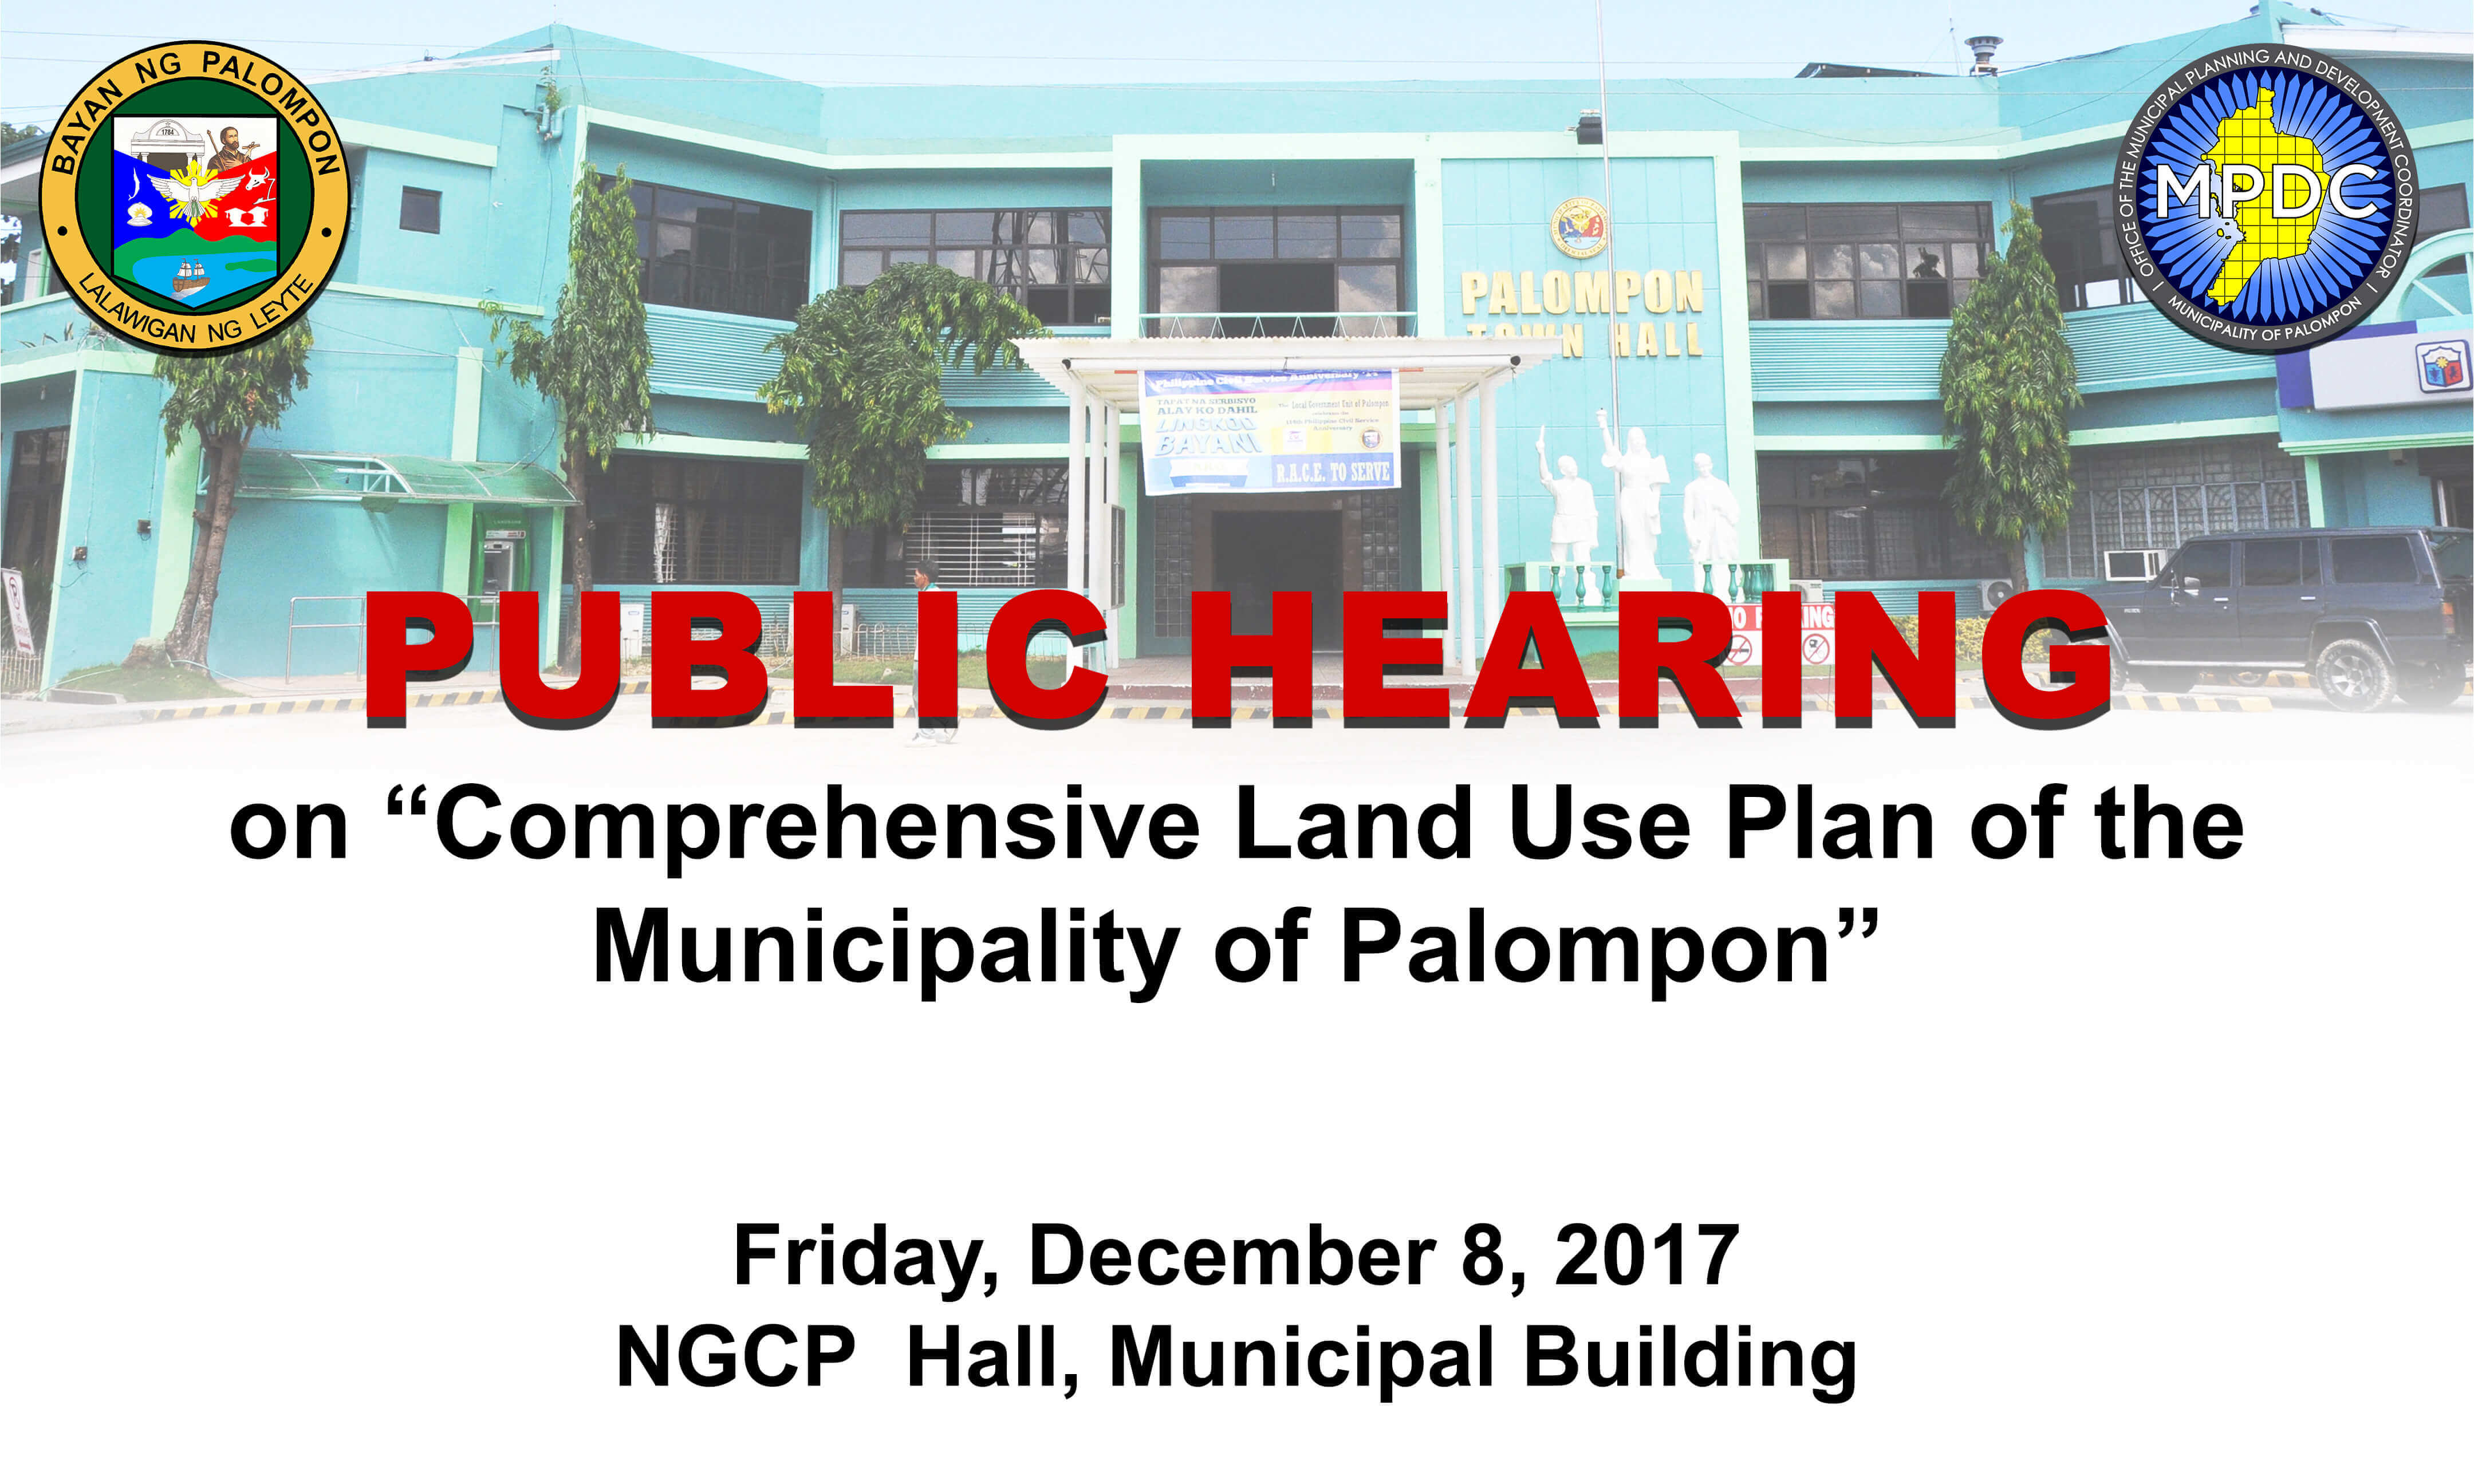 Public Hearing on the formulation of the Comprehensive Land Use Plan of the Municipality of Palompon